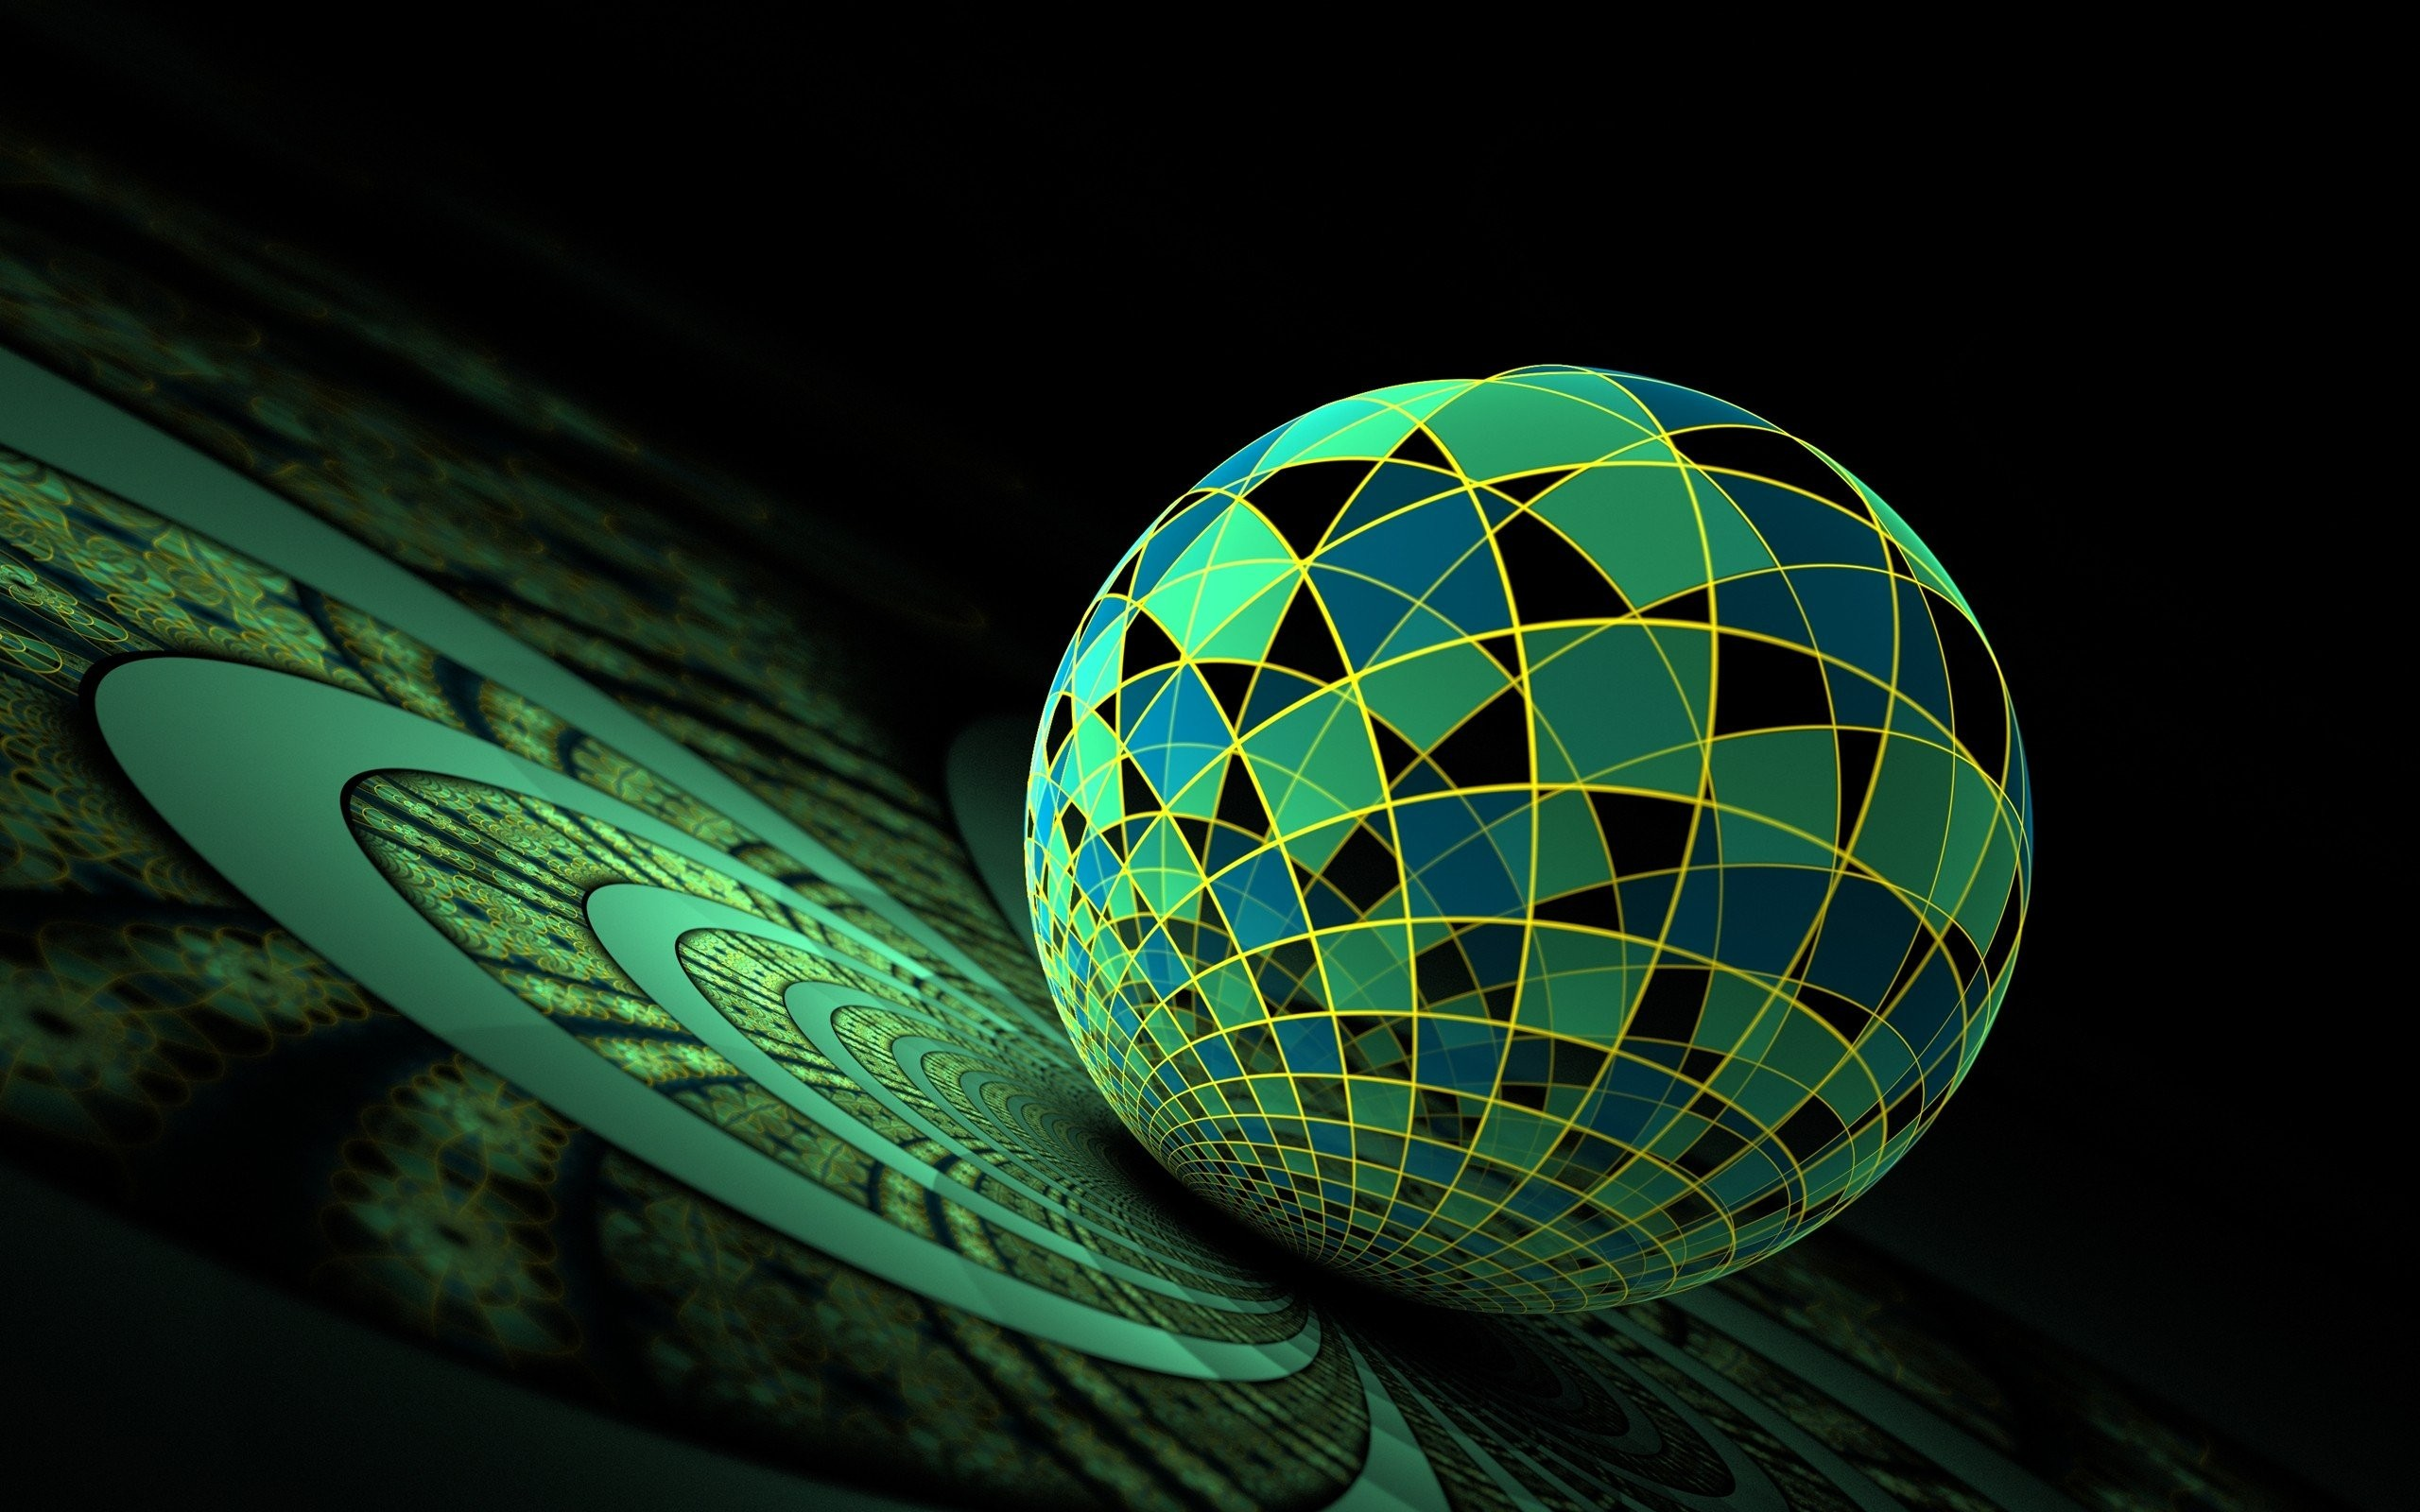 3D Wallpaper For Pc Download